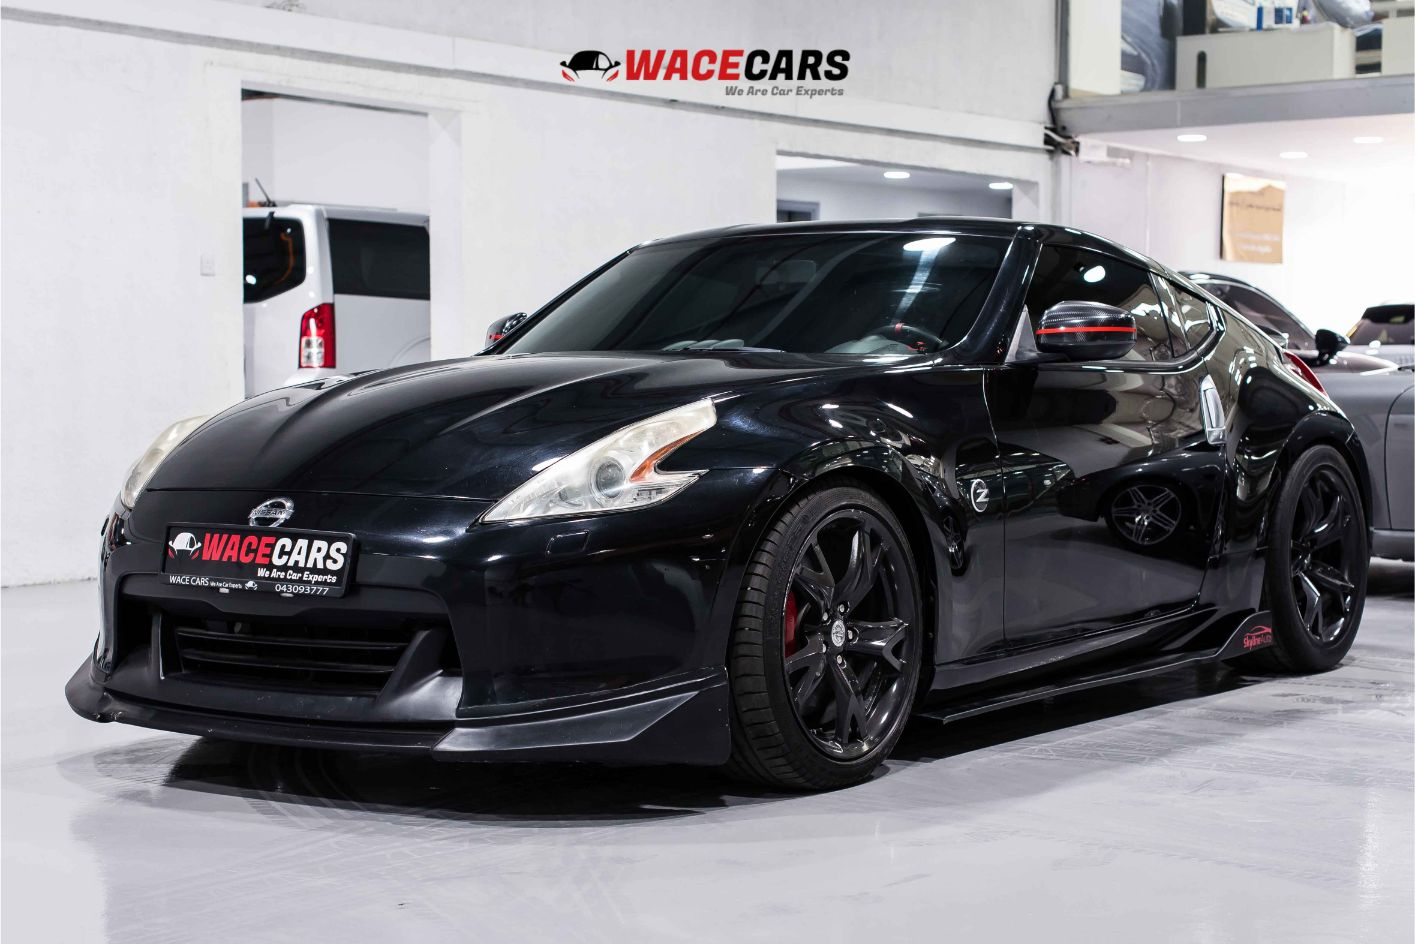 Used Nissan 370Z Coupe 2012 For Sale In Dubai